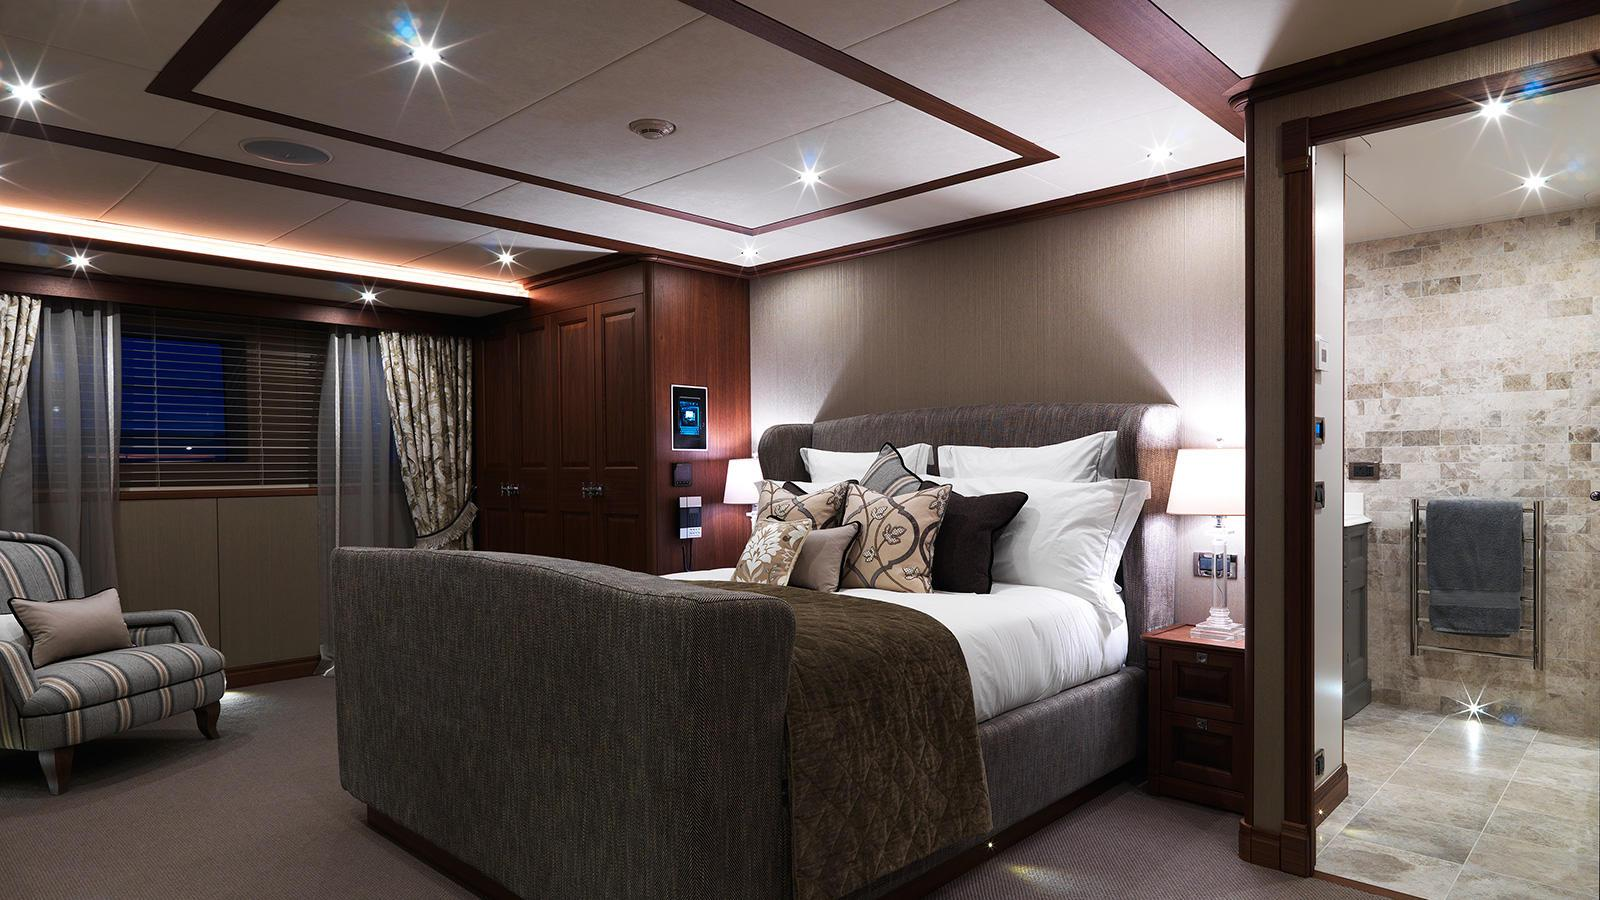 storm-motor-yacht-cantiere-dell-marche-darwin-107-2015-33m-stateroom